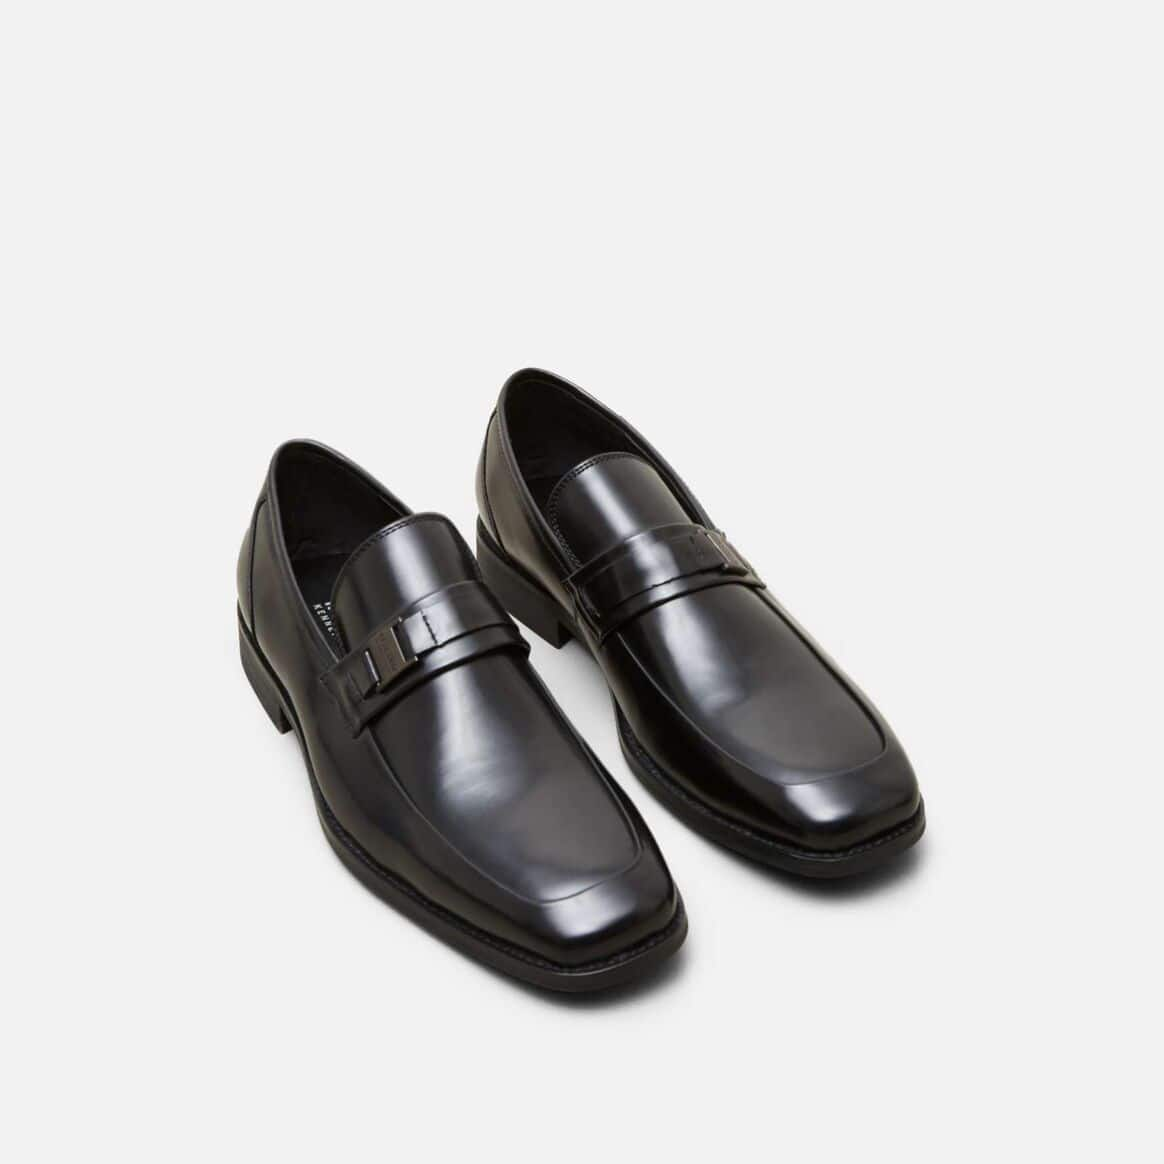 Kenneth Cole Reaction: Men's Near D Mark Bit Detailed Loafer $29, Men's Intrepid Low Top Sneaker $34 + FS on $50 w/ ShopRunner